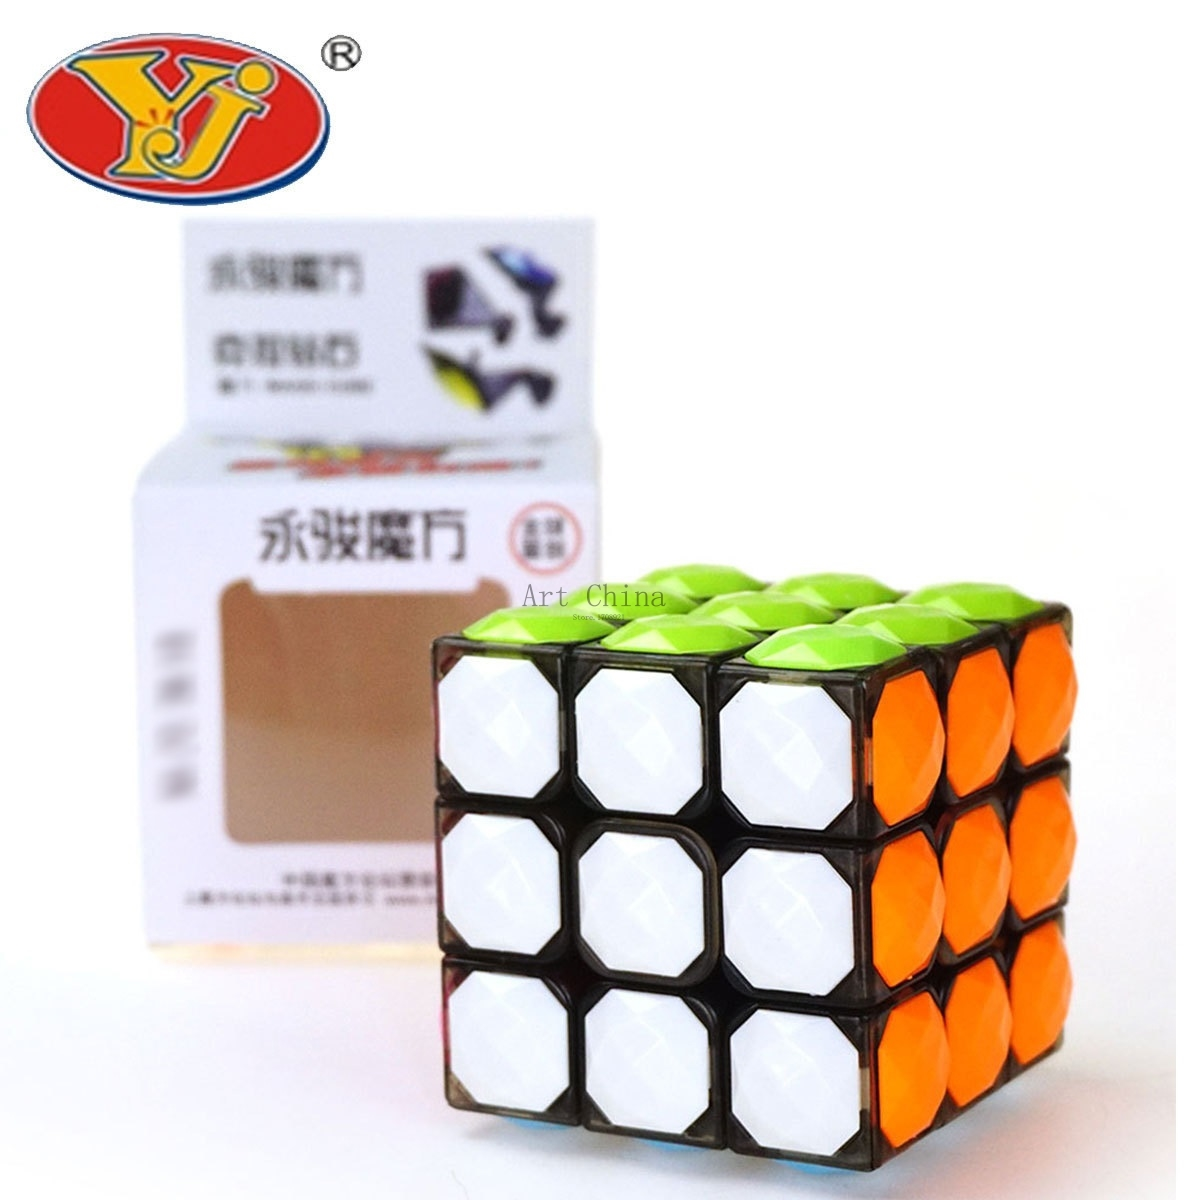 YJ Fidget Cube Professional Magic Cube 3x3x3 Puzzles Cube Kids Gifts Magic Speed Cubes Educational Toy